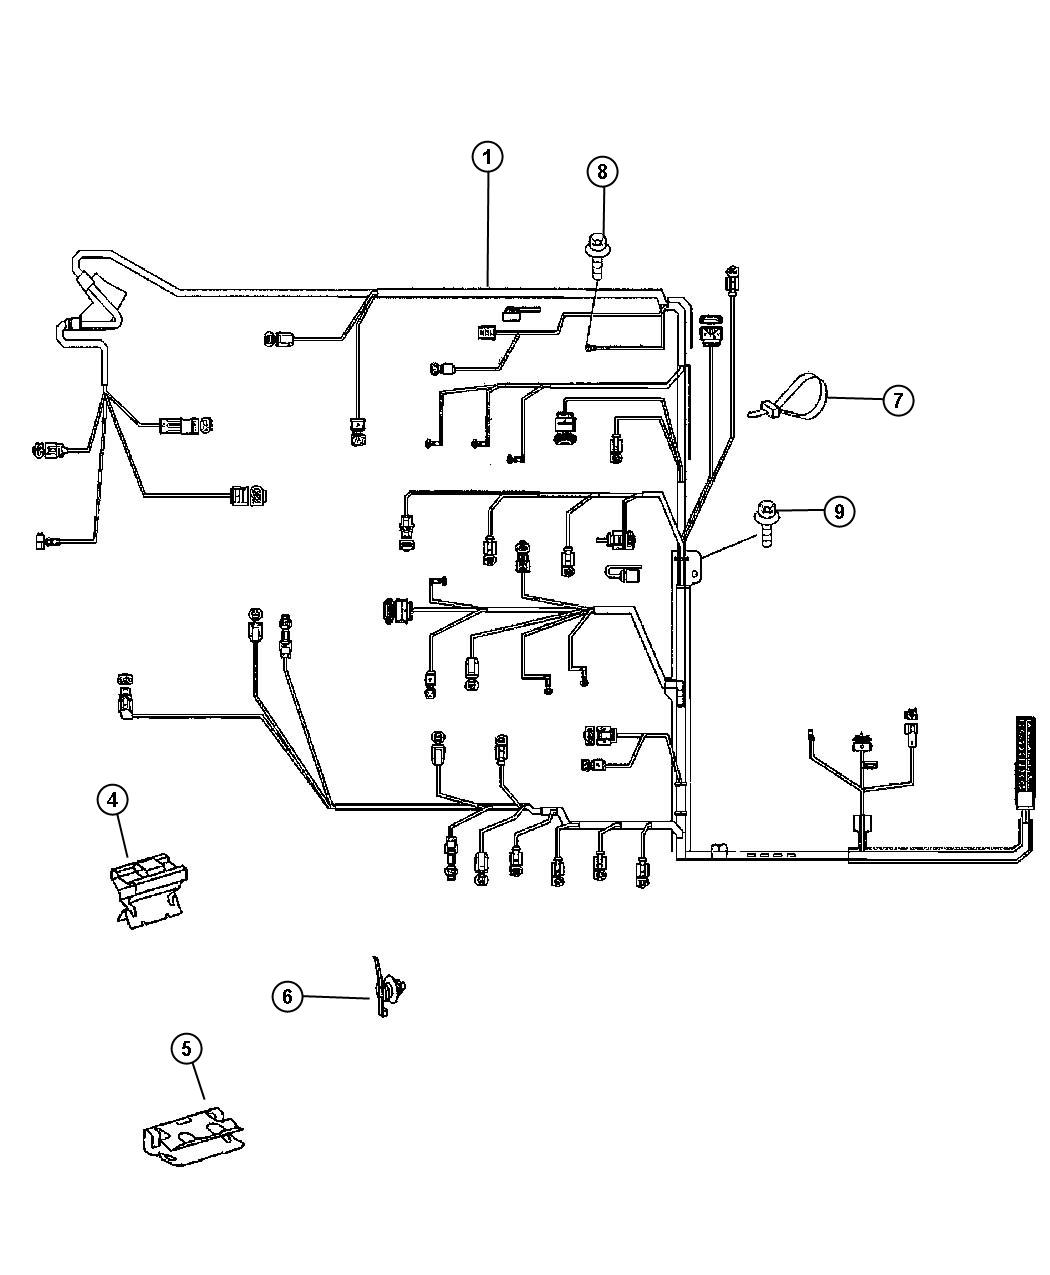 hight resolution of engine wire harness dodge sprinter get free image about wiring diagram 2 1l sprinter engine diagram